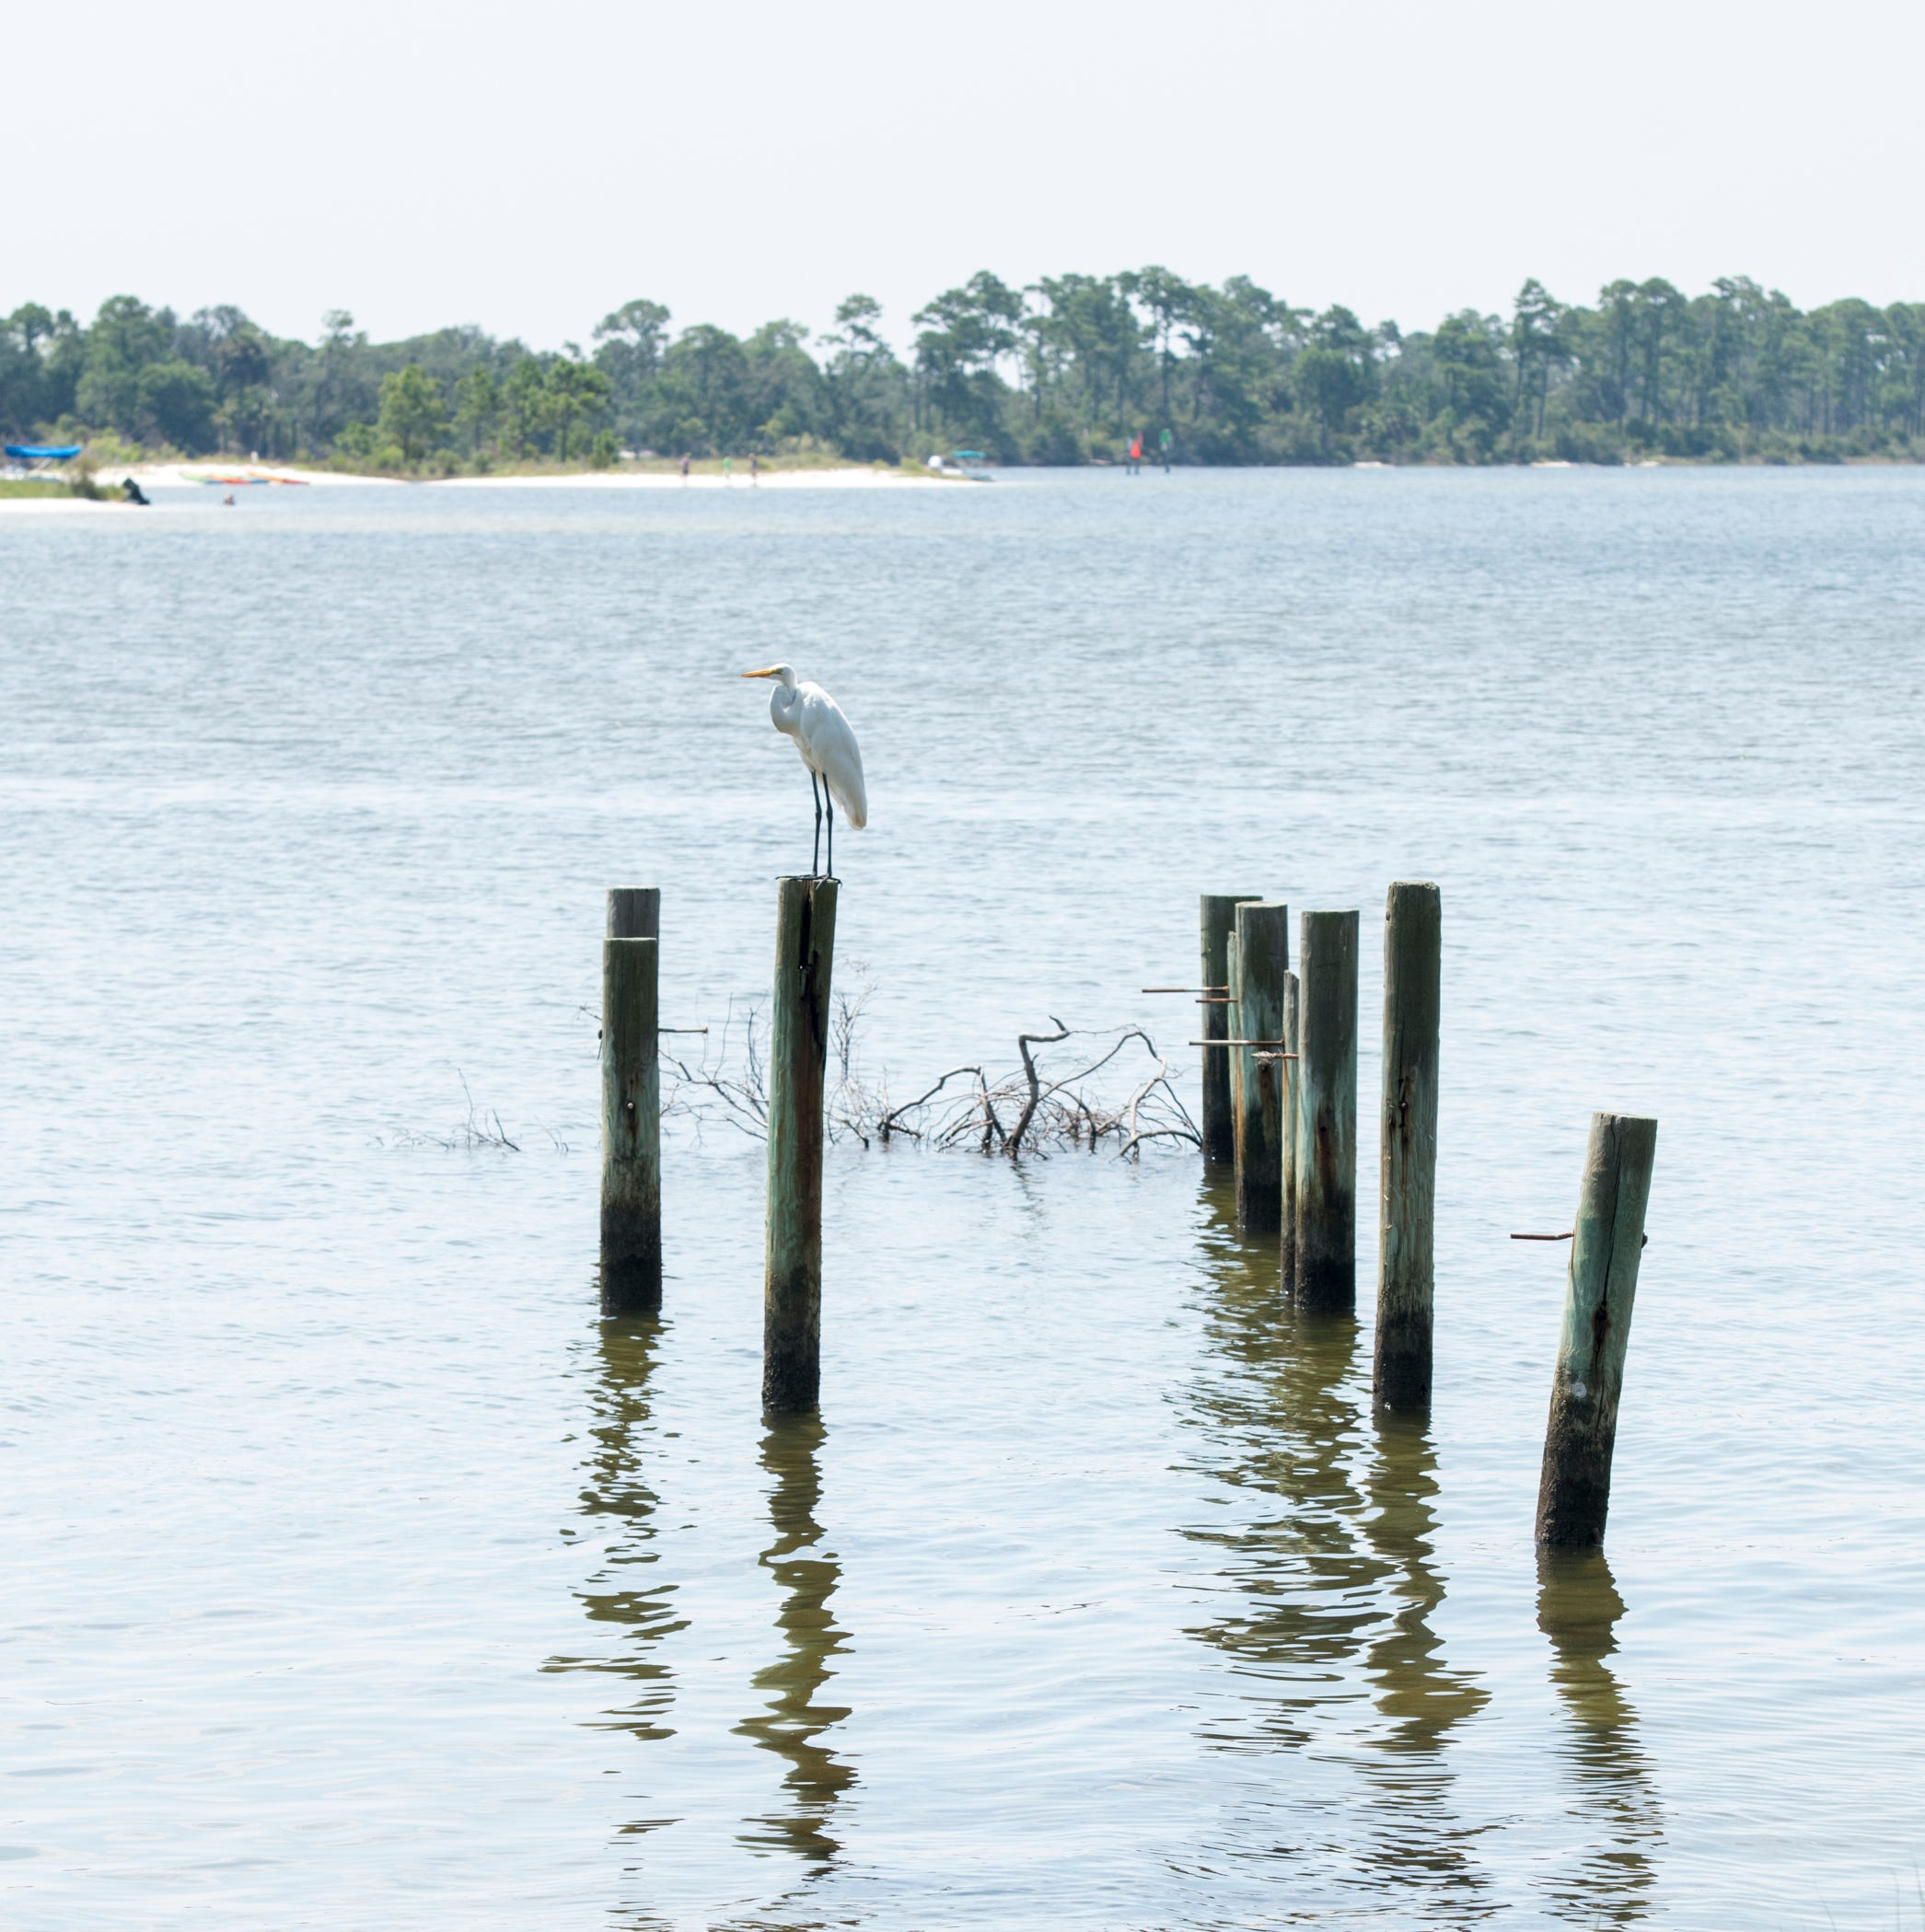 Major living shoreline project planned around Pensacola Naval Air Station